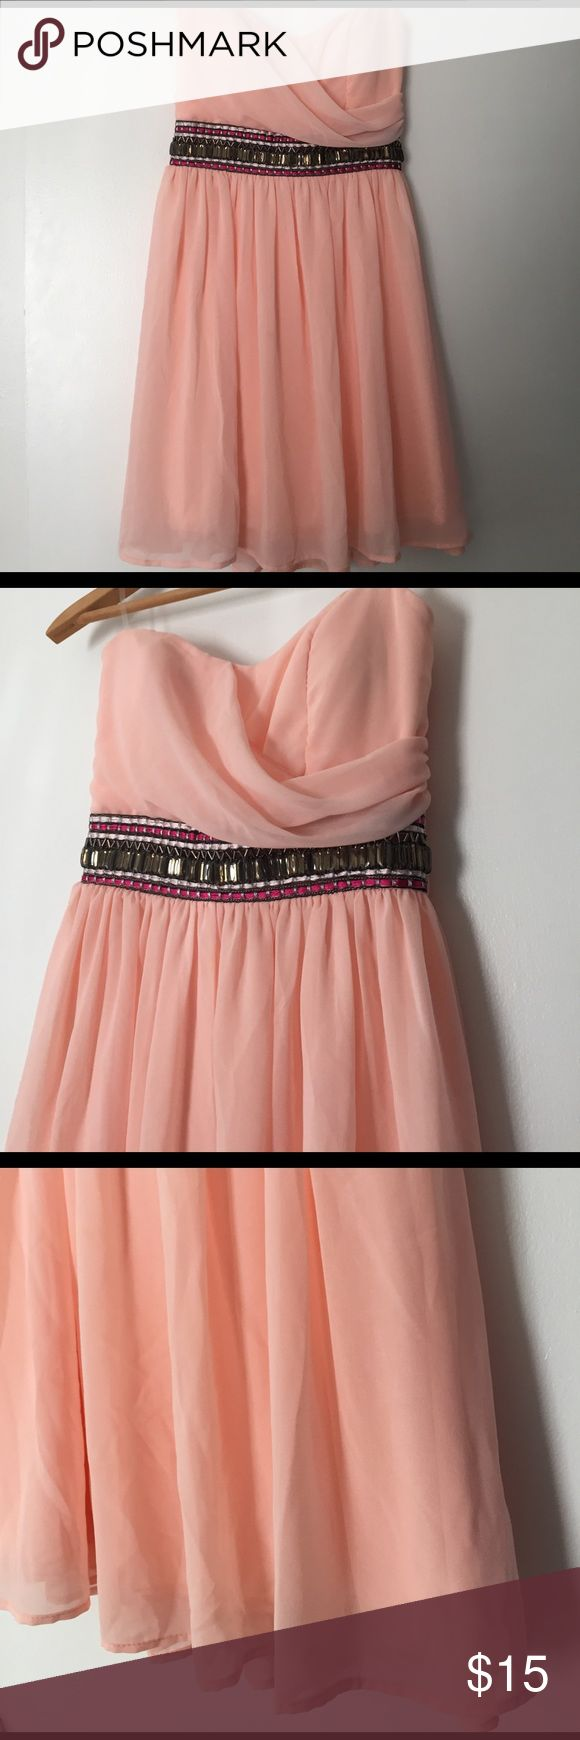 Formal Dress Sweet, girly, fun little formal dress. While this does fall under the formal category, I personally think it can double as a casual Dress by adding a cute little denim jacket over it! Fun details in the dress such as the beading, and the flow-y tulle. Dresses Prom